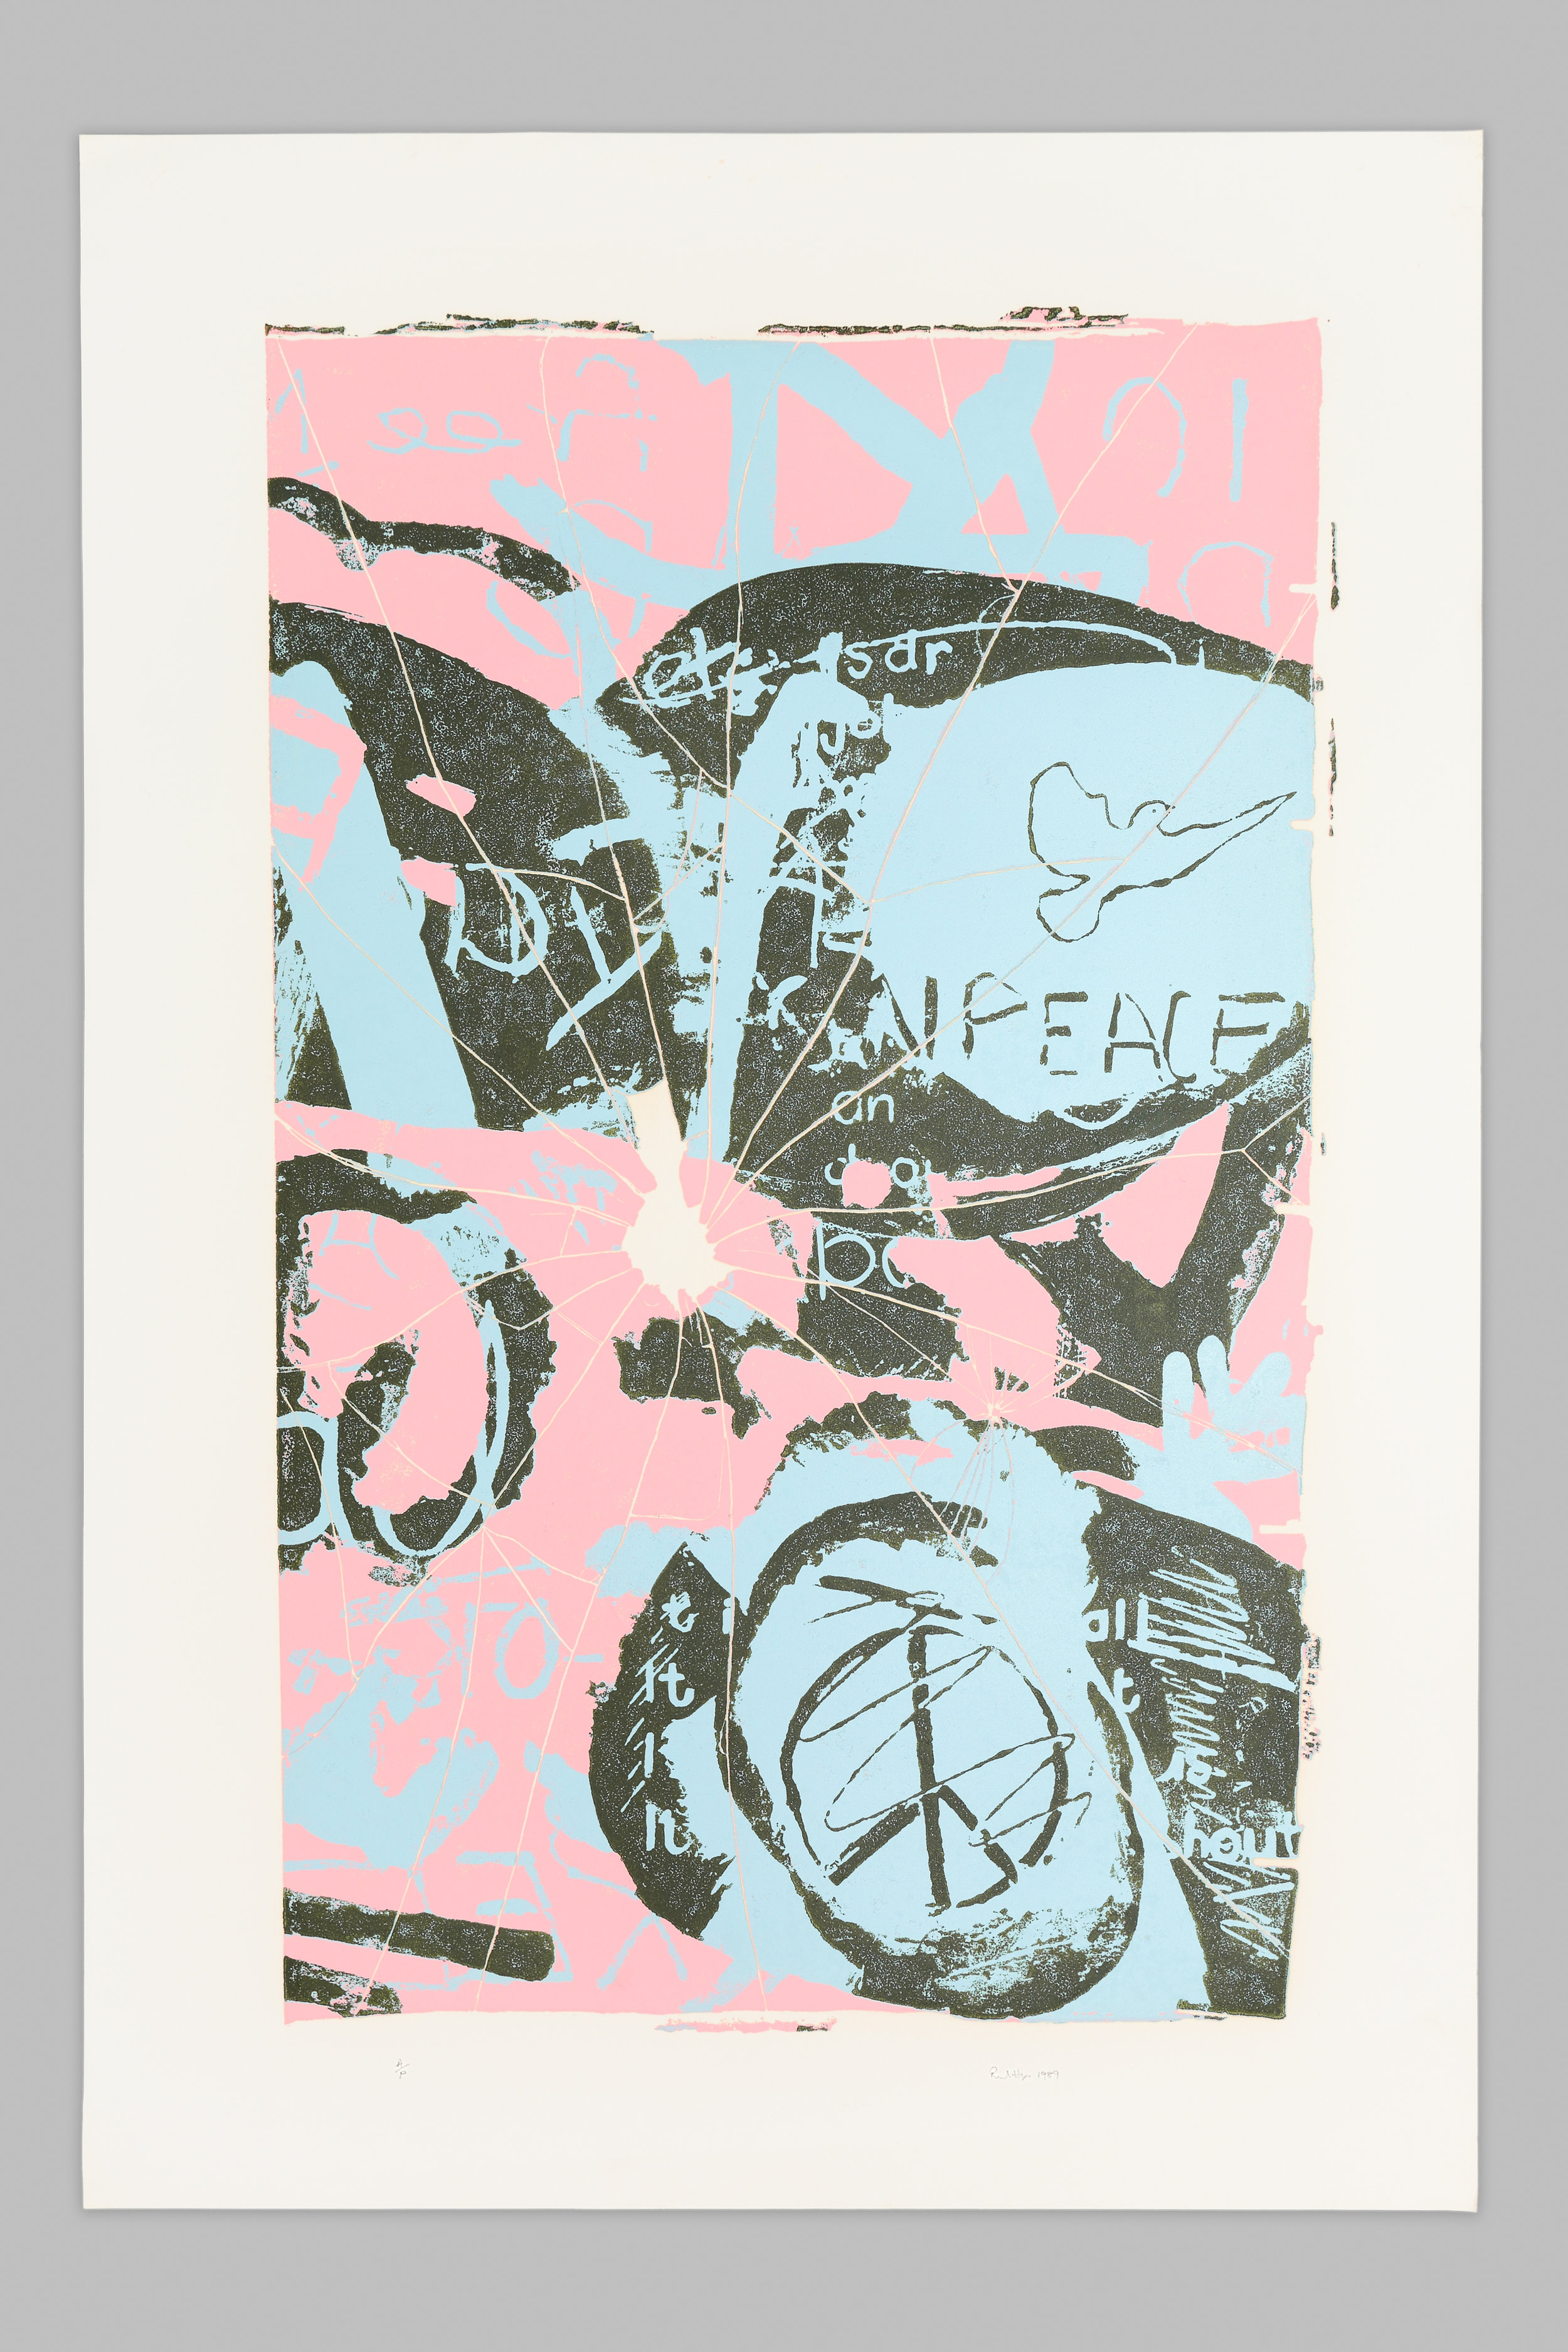 A semi-abstract artwork with large areas of light blue, pink and black. Peace symbols and markings resembling broken glass are visible.